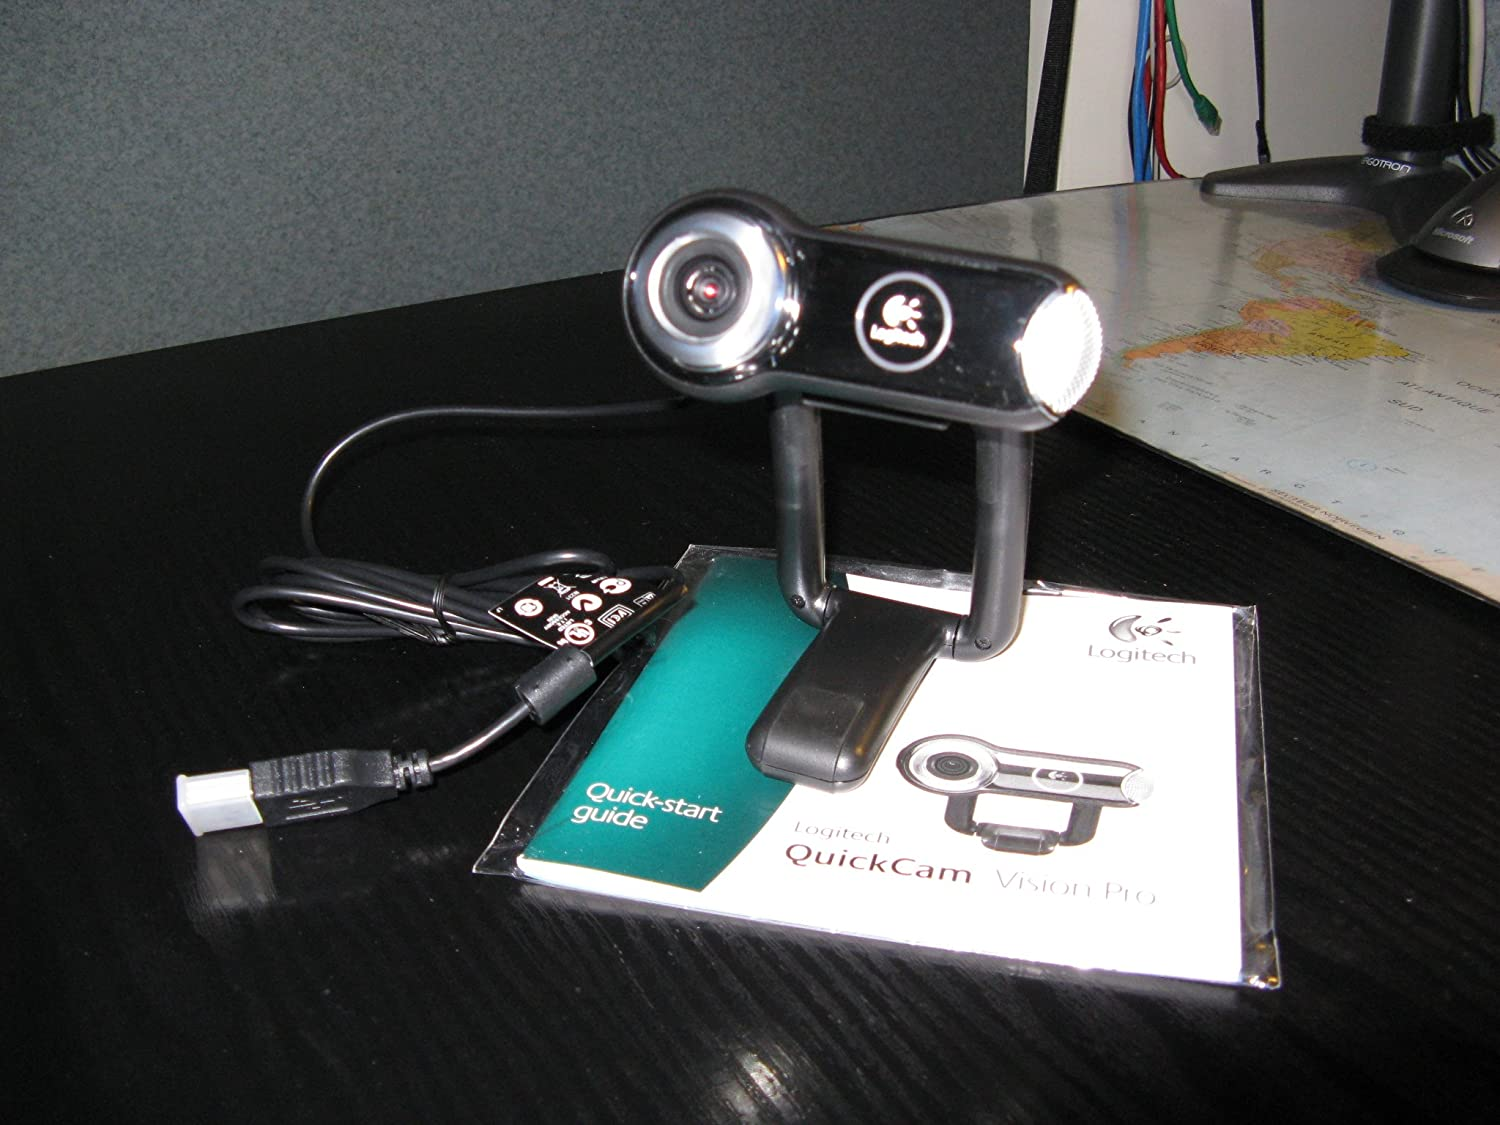 logitech quickcam vision pro for mac specifications